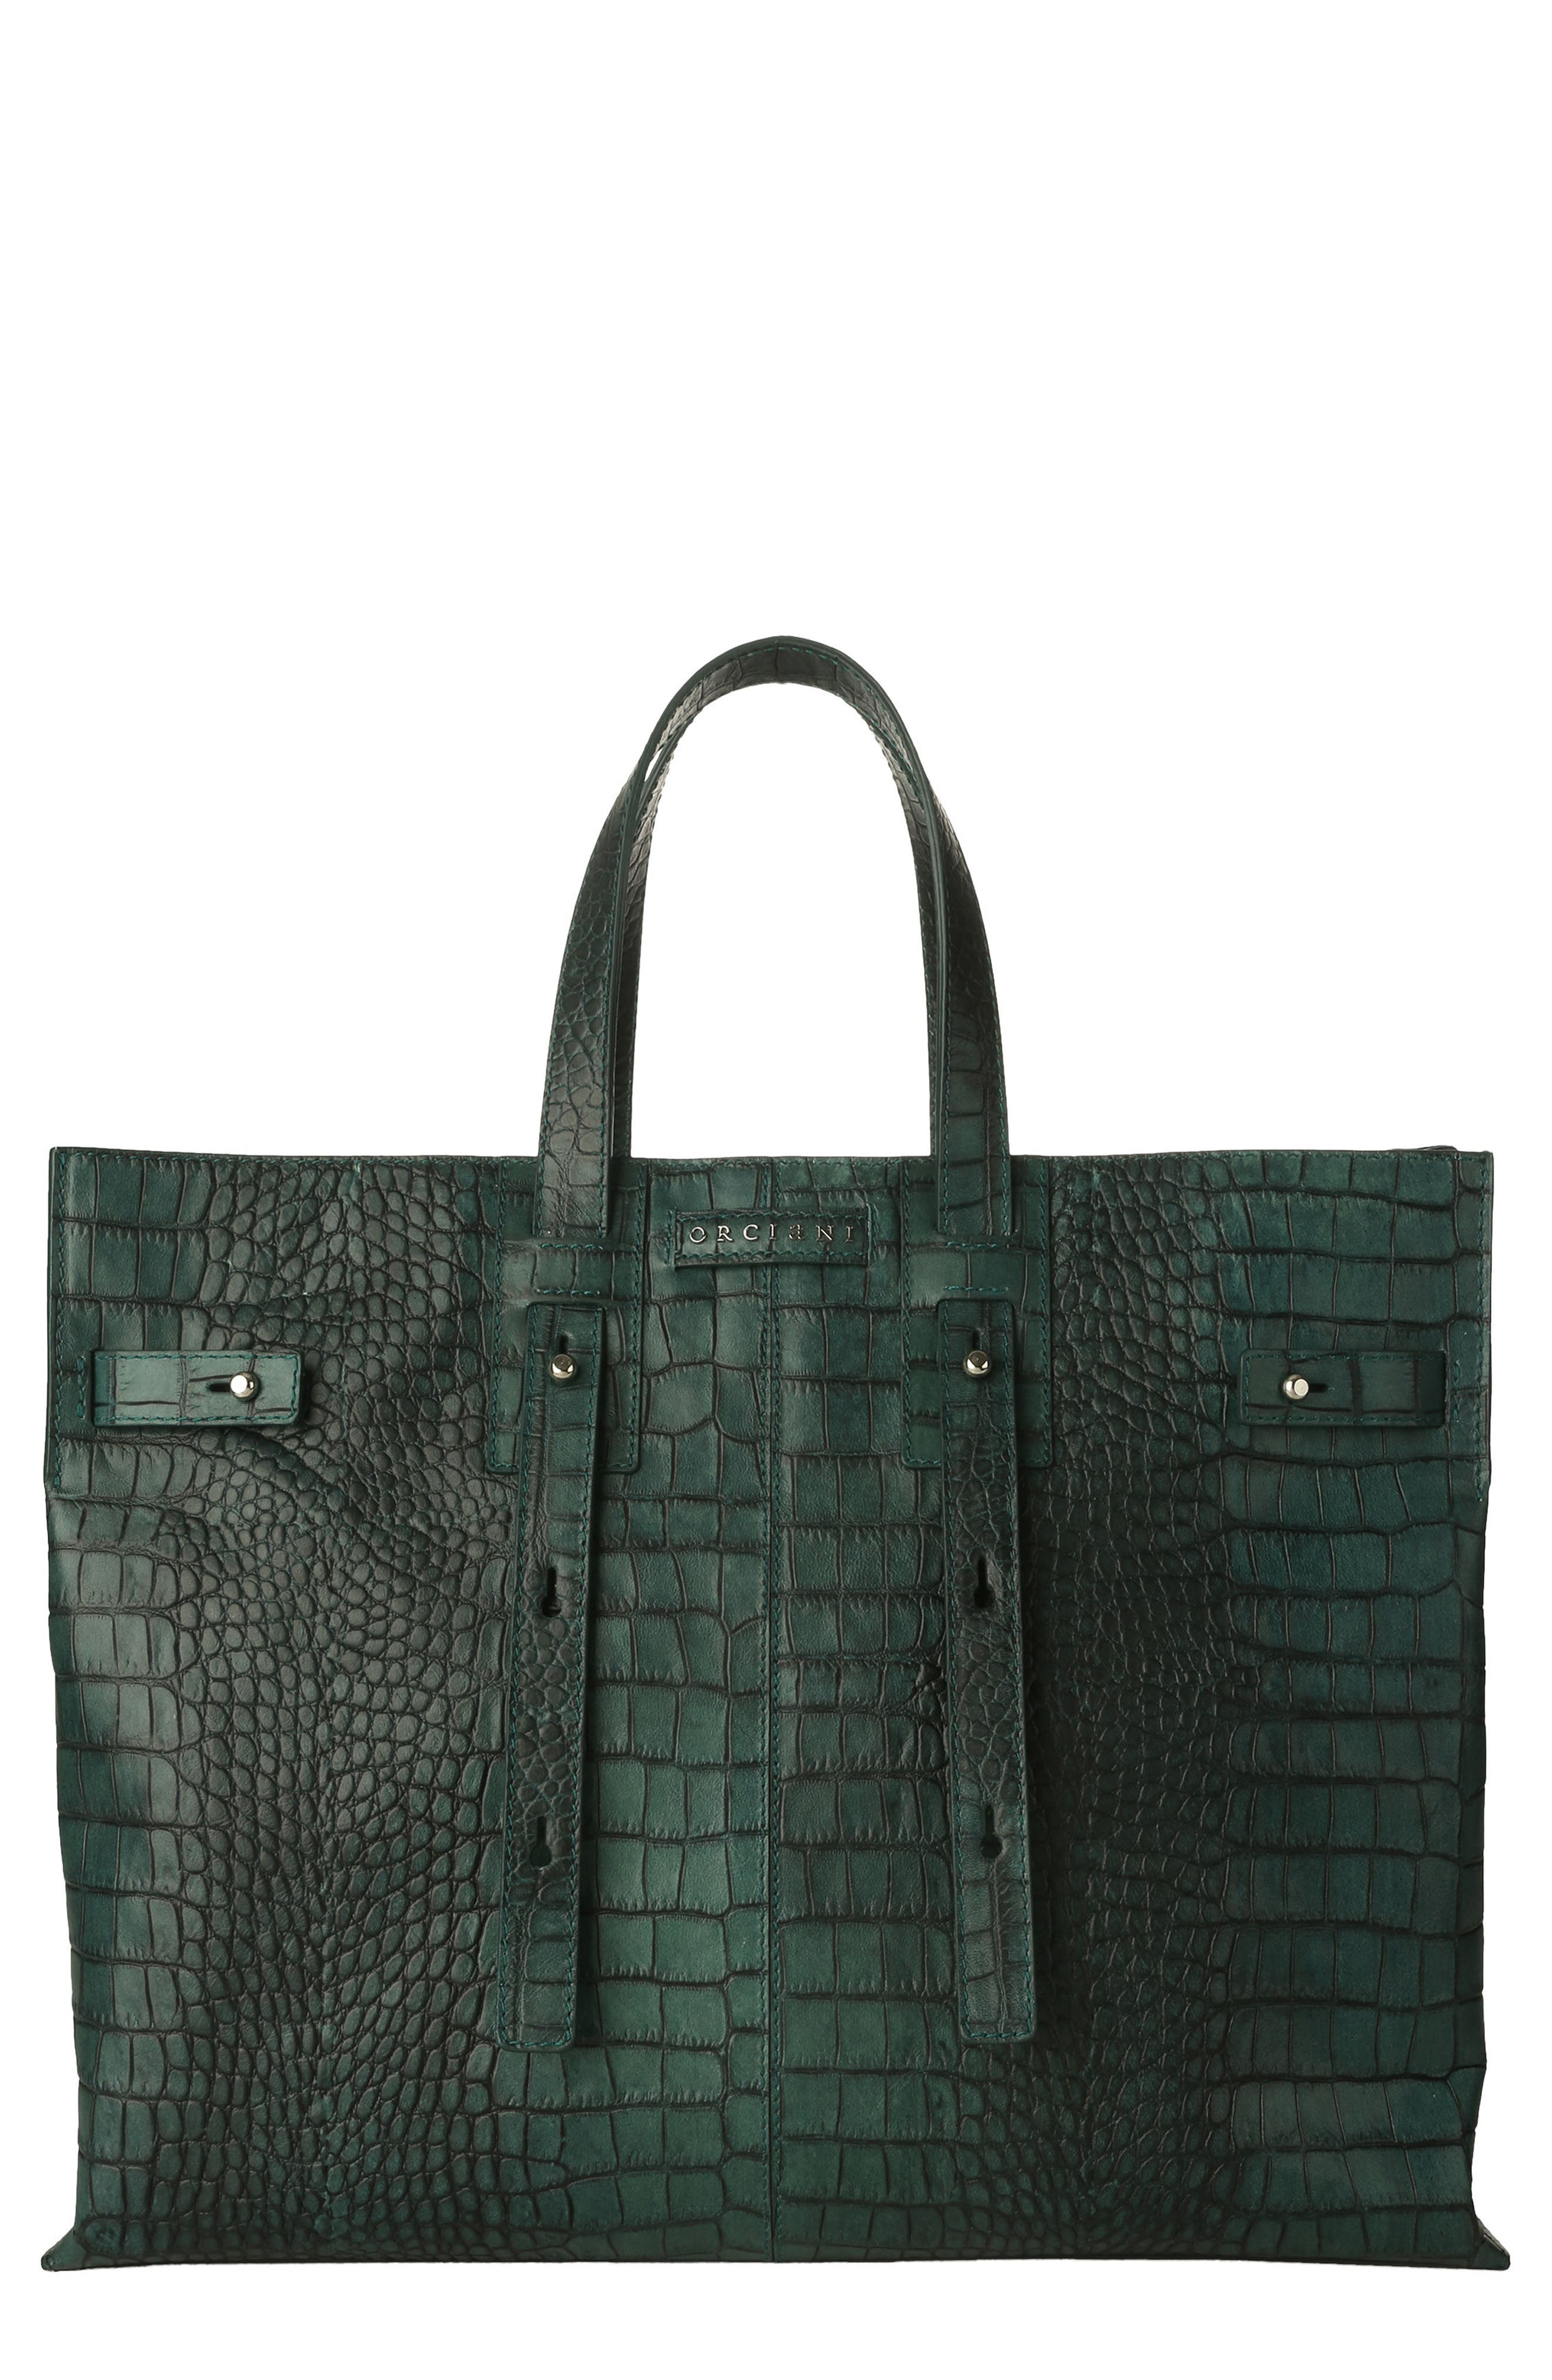 ORCIANI Petra Croc-Embossed Calfskin Leather Tote